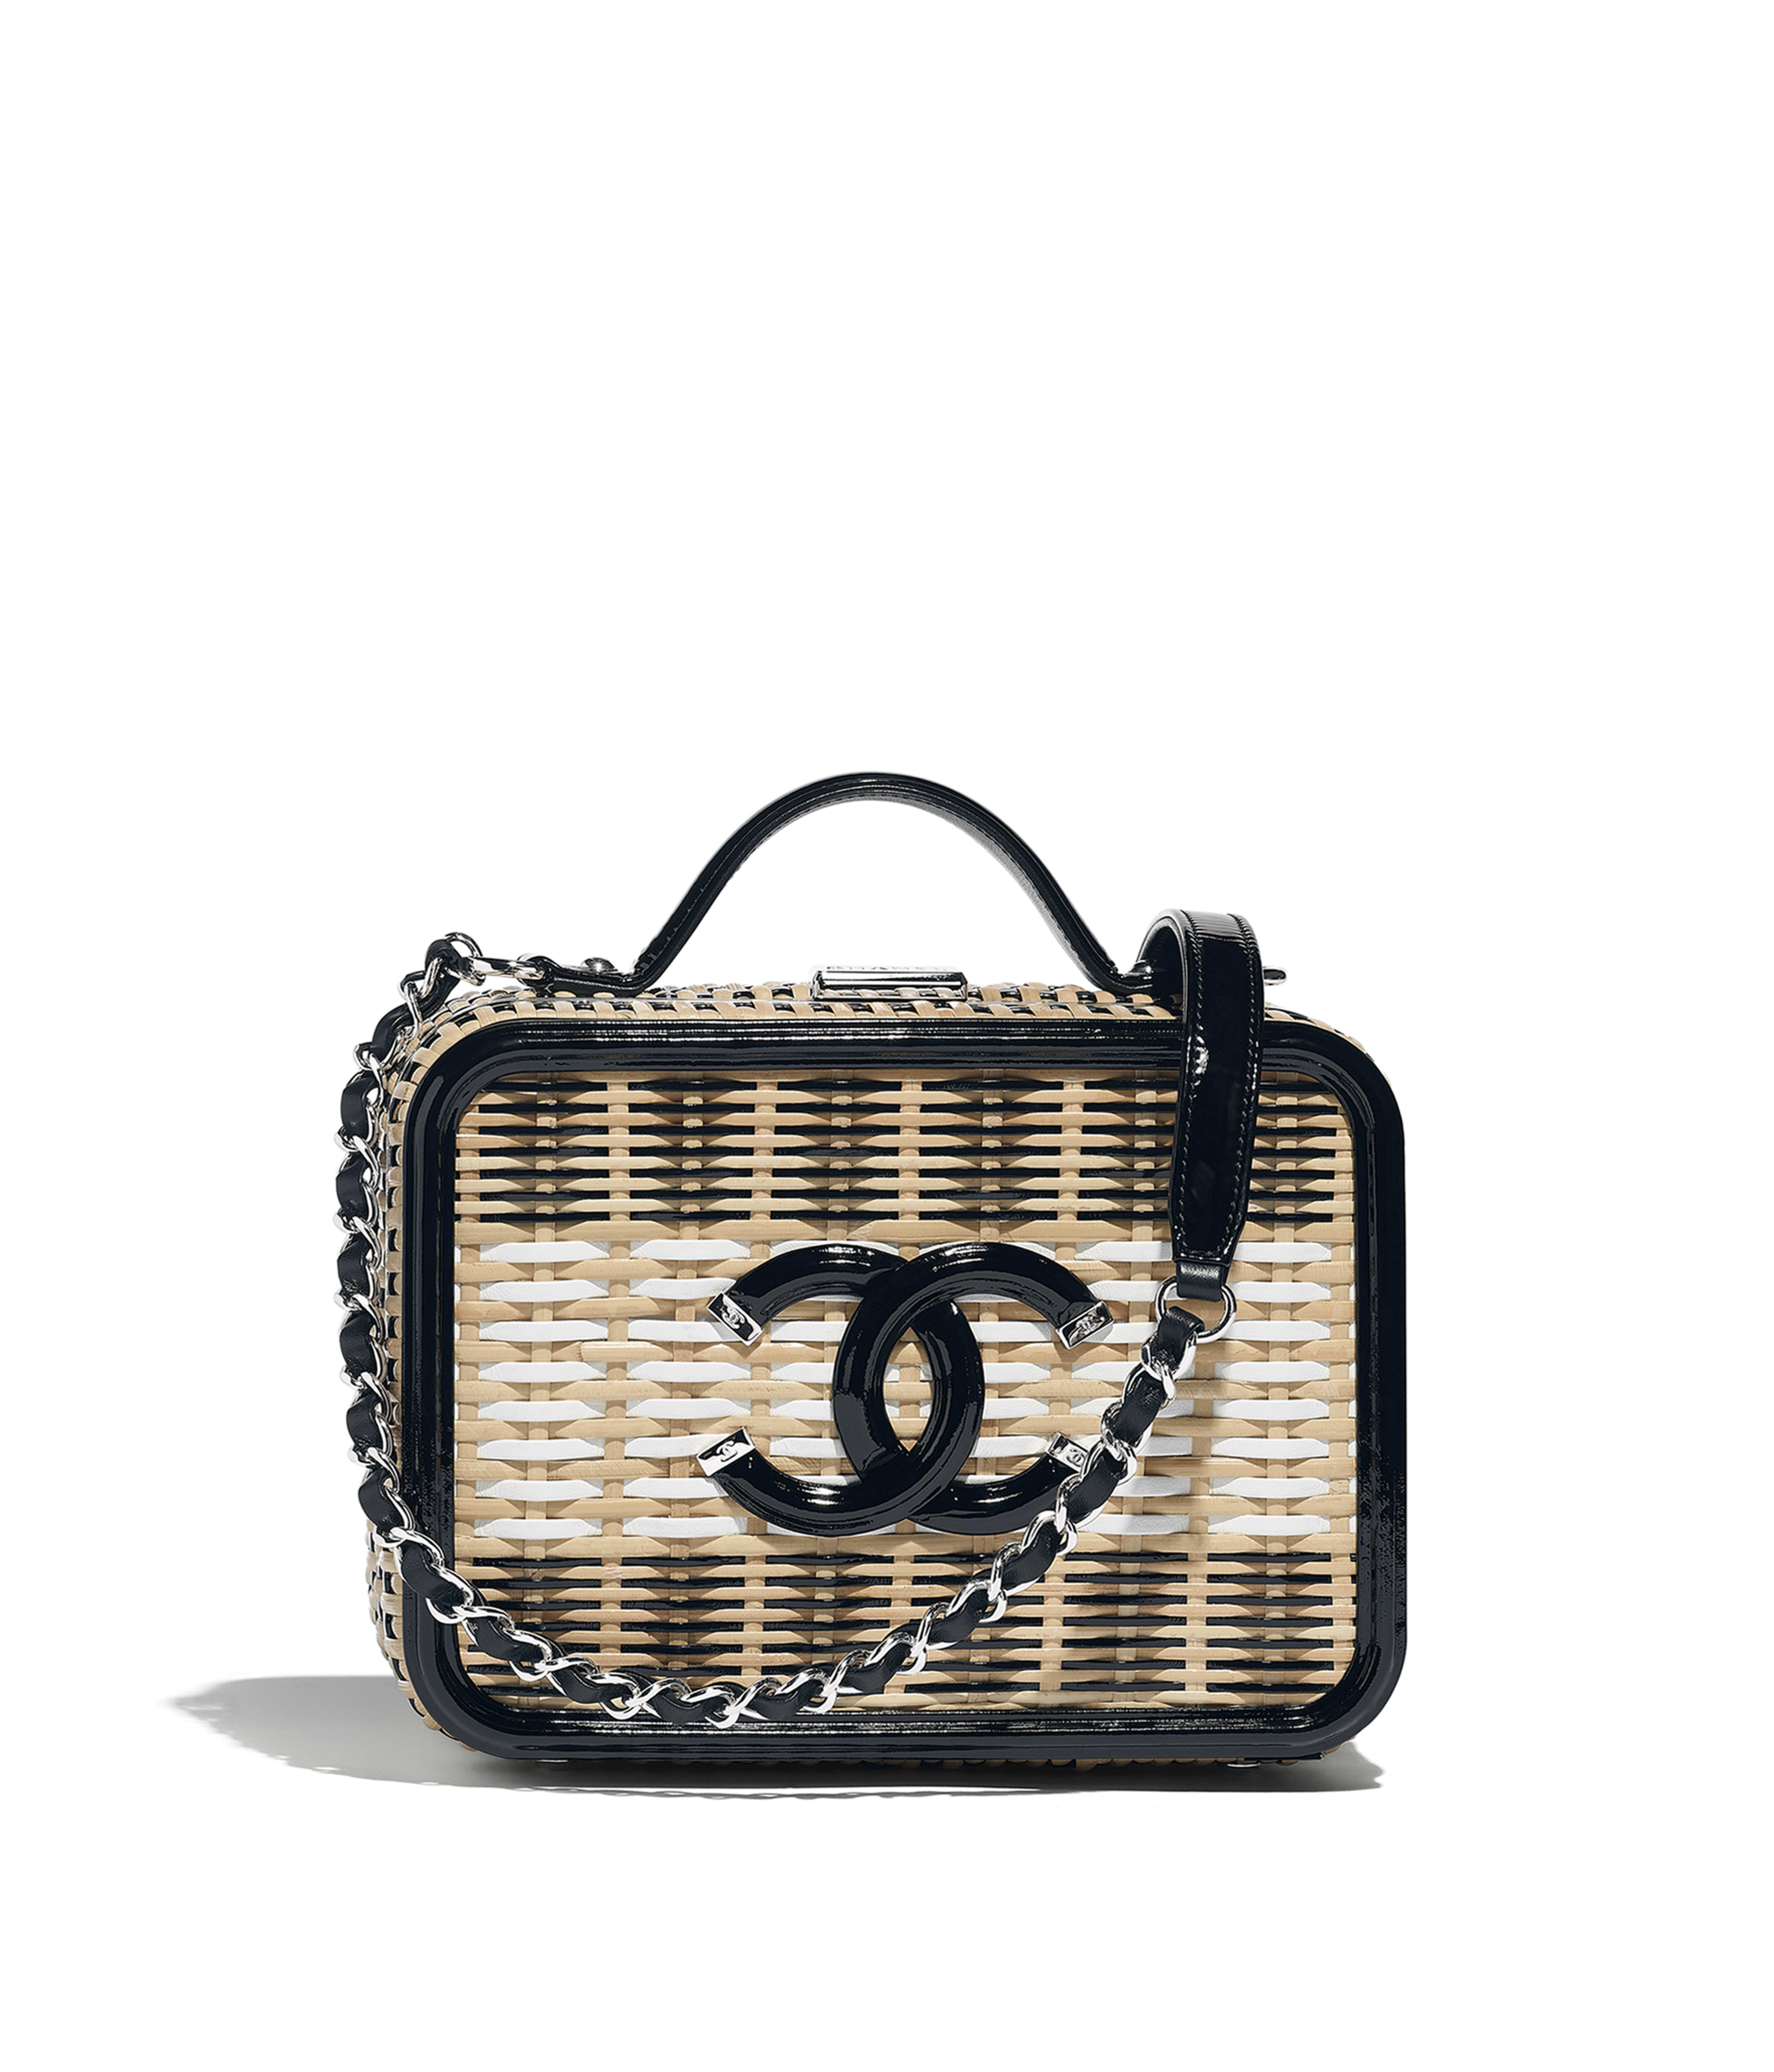 3a8129195ad Handbags - Fashion